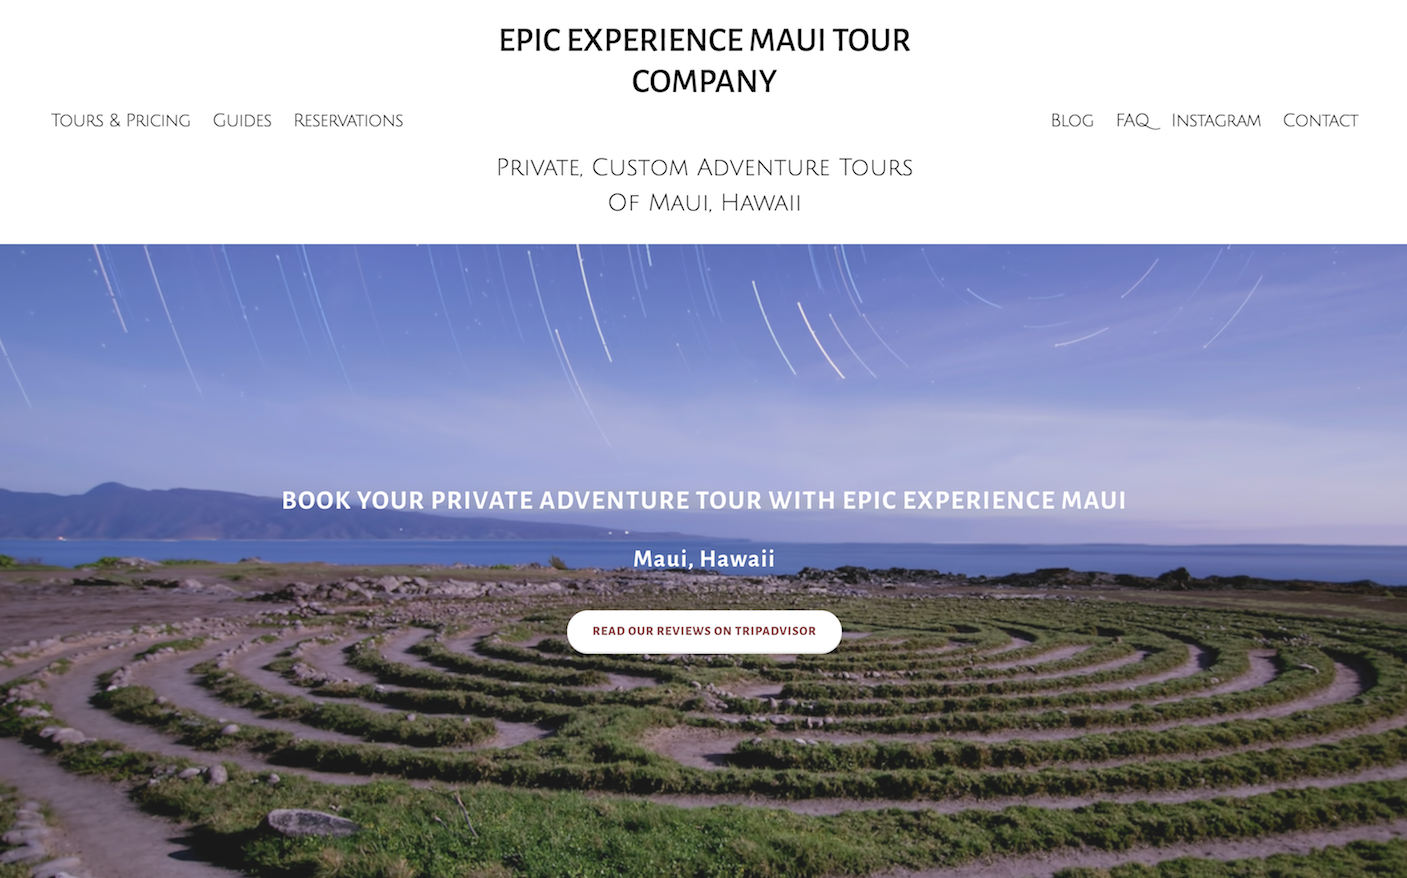 epic-experience-maui-website-by-pueo-creations.png